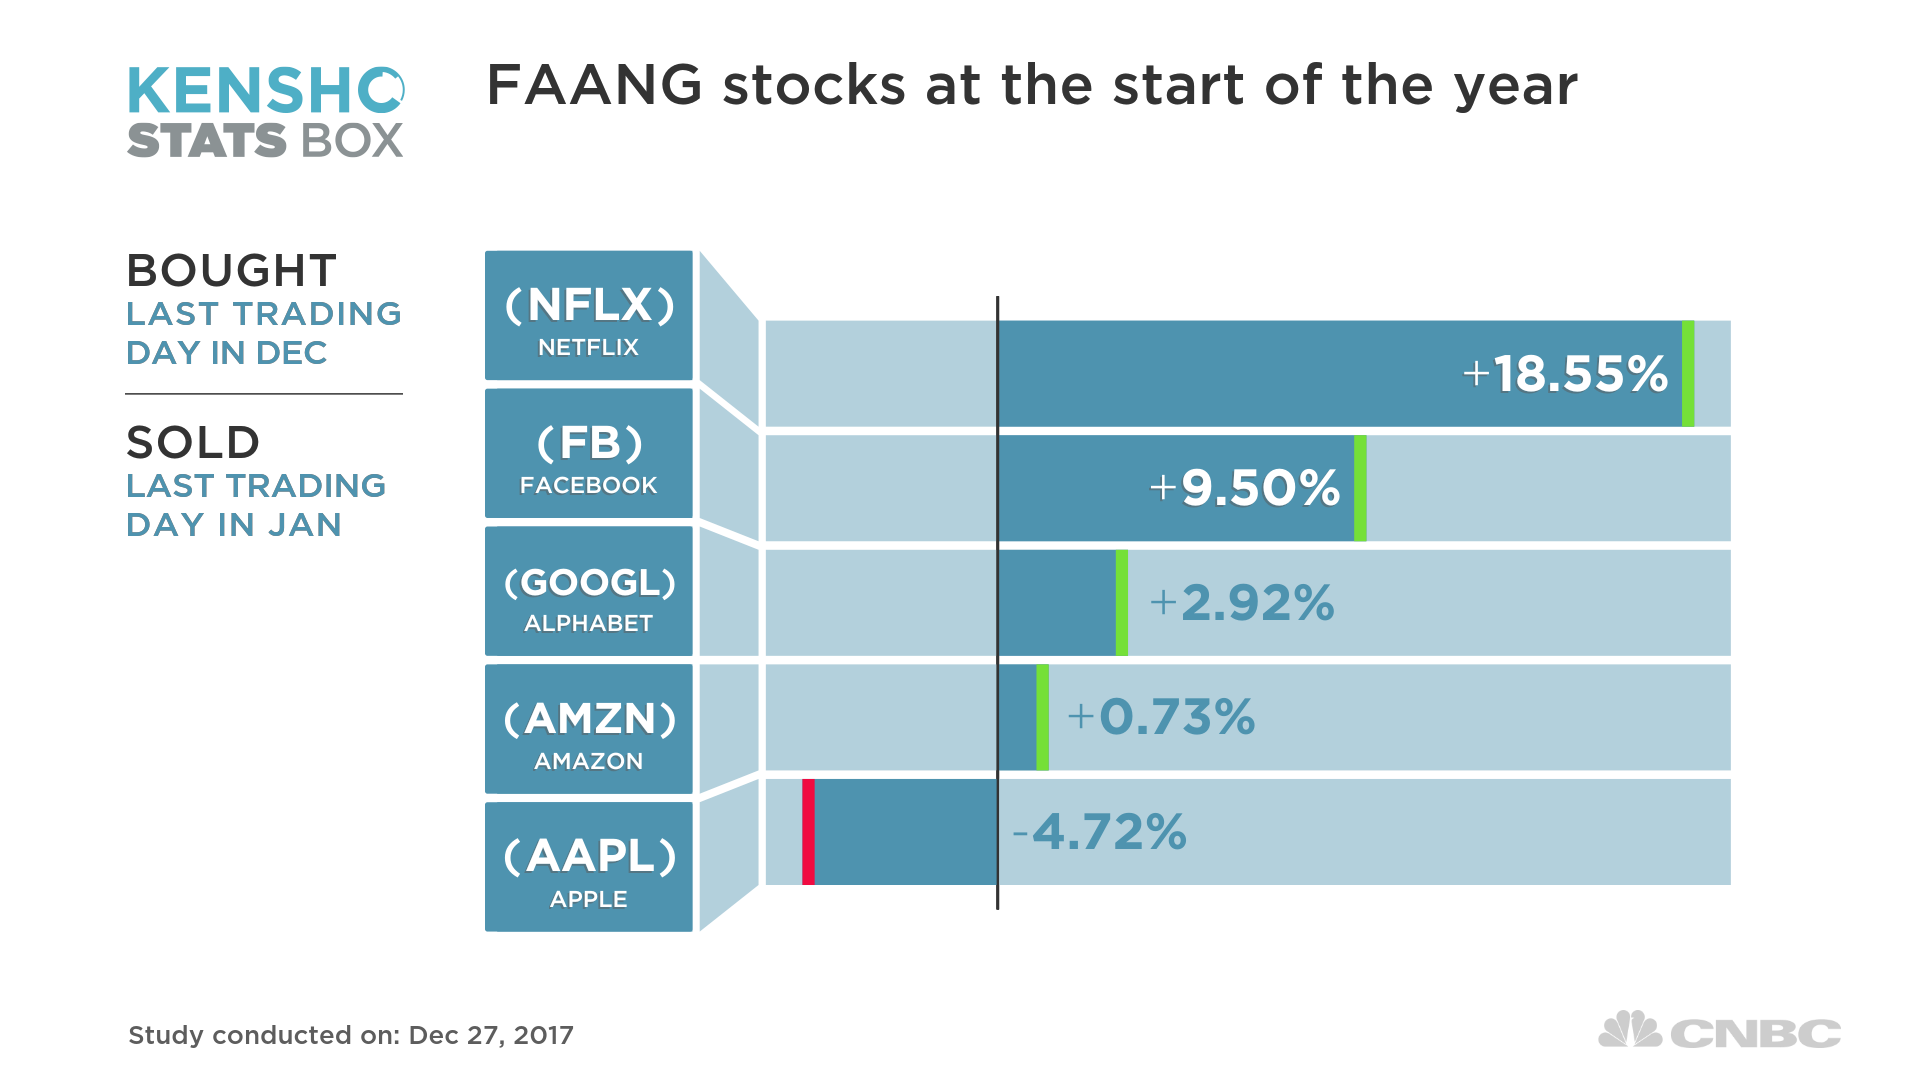 Best Performing Faang Stocks At The Start Of The Year